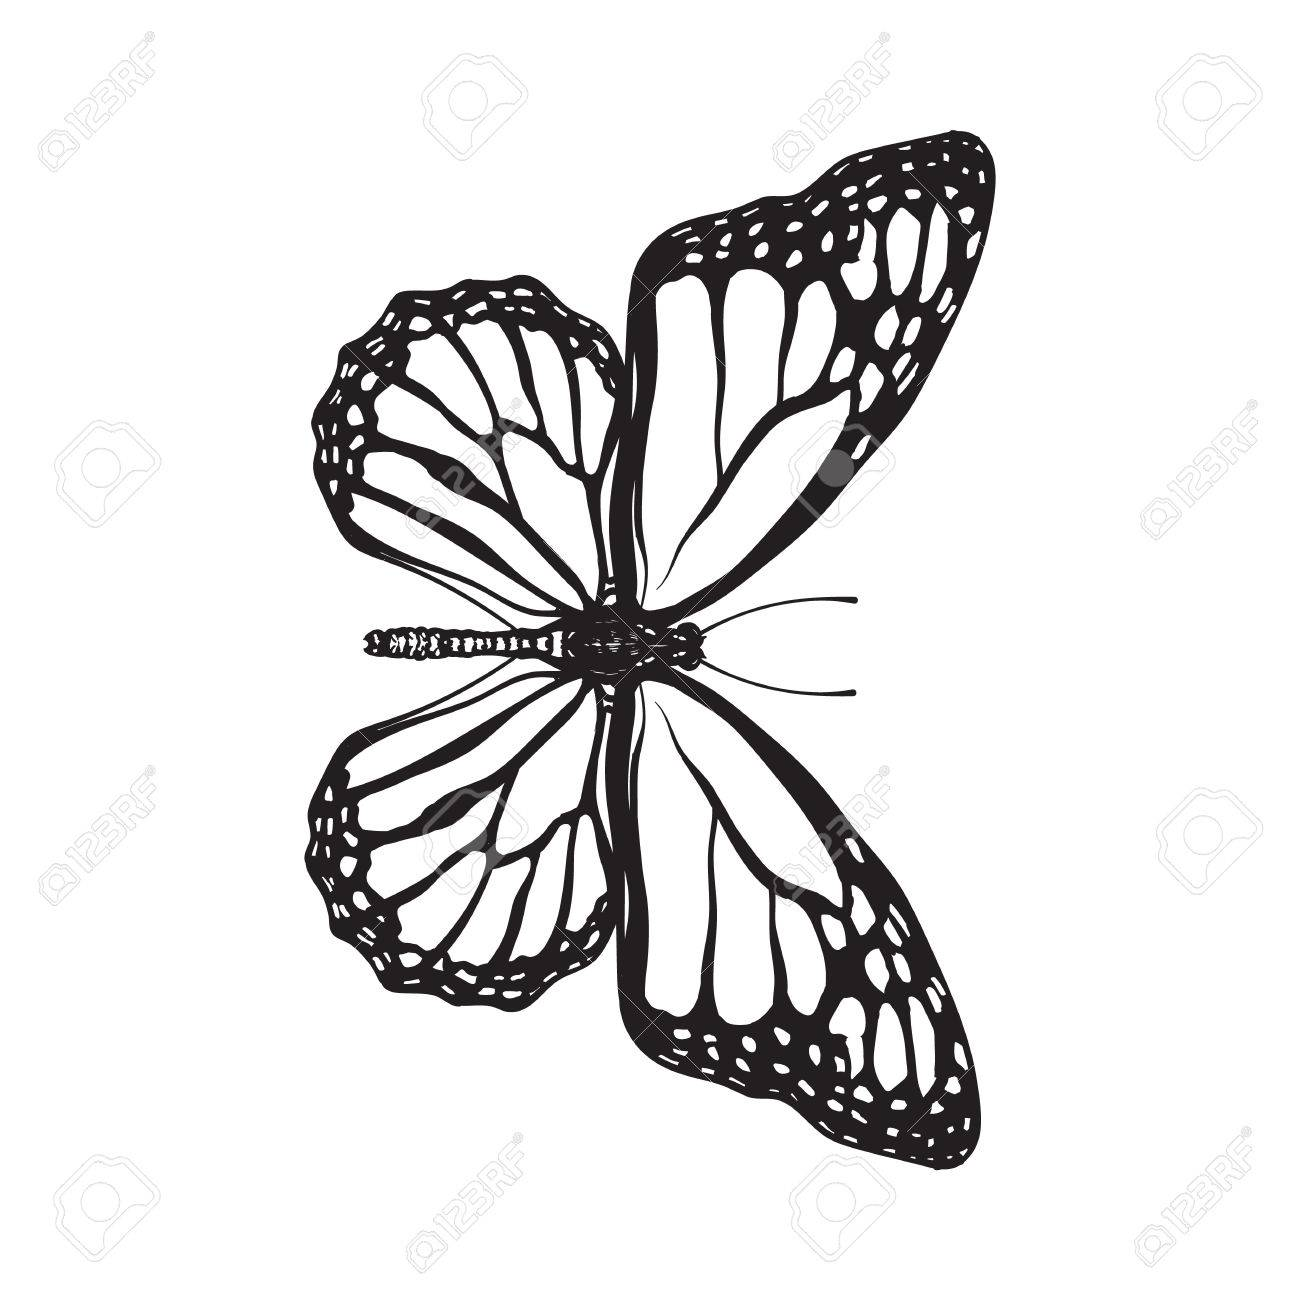 1300x1300 Top View Of Beautiful Monarch Butterfly, Sketch Illustration